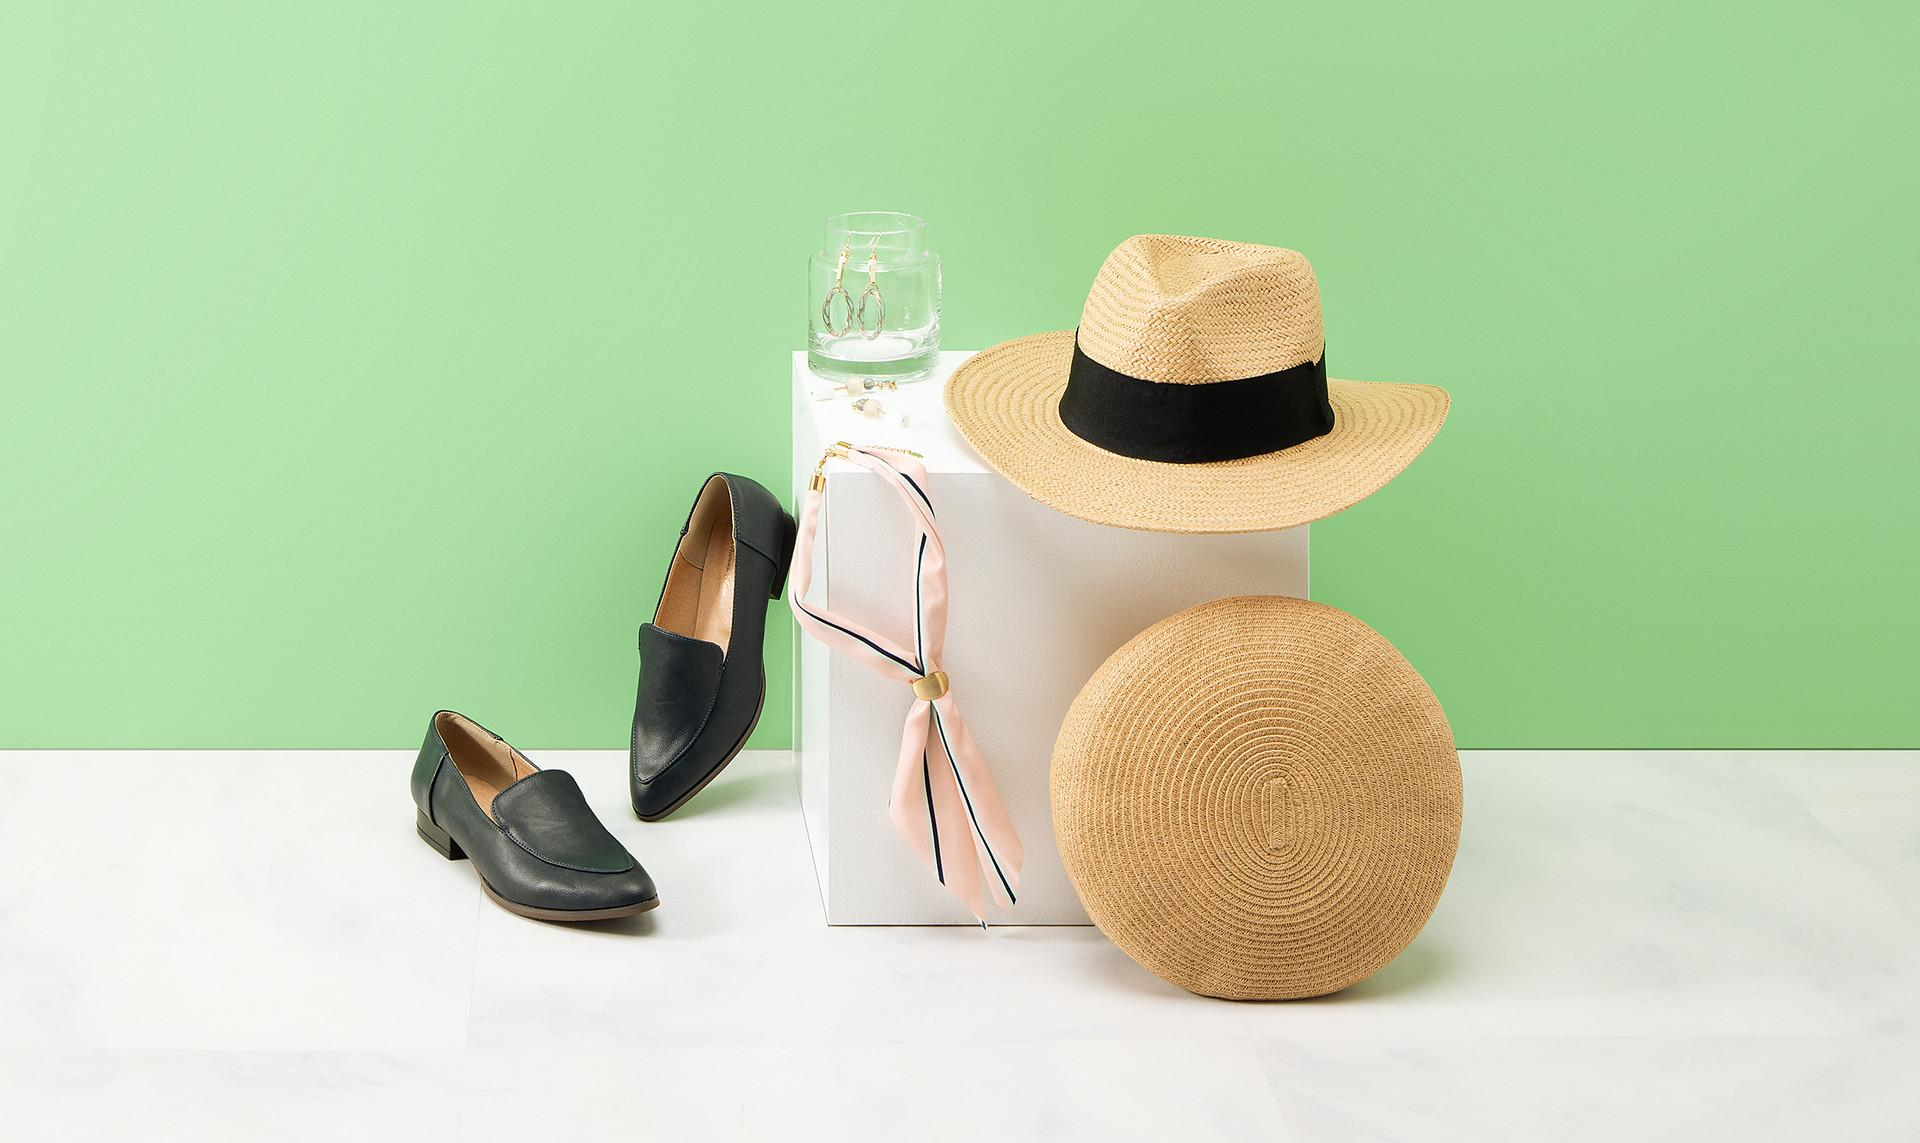 Shoes & Accessories Selection